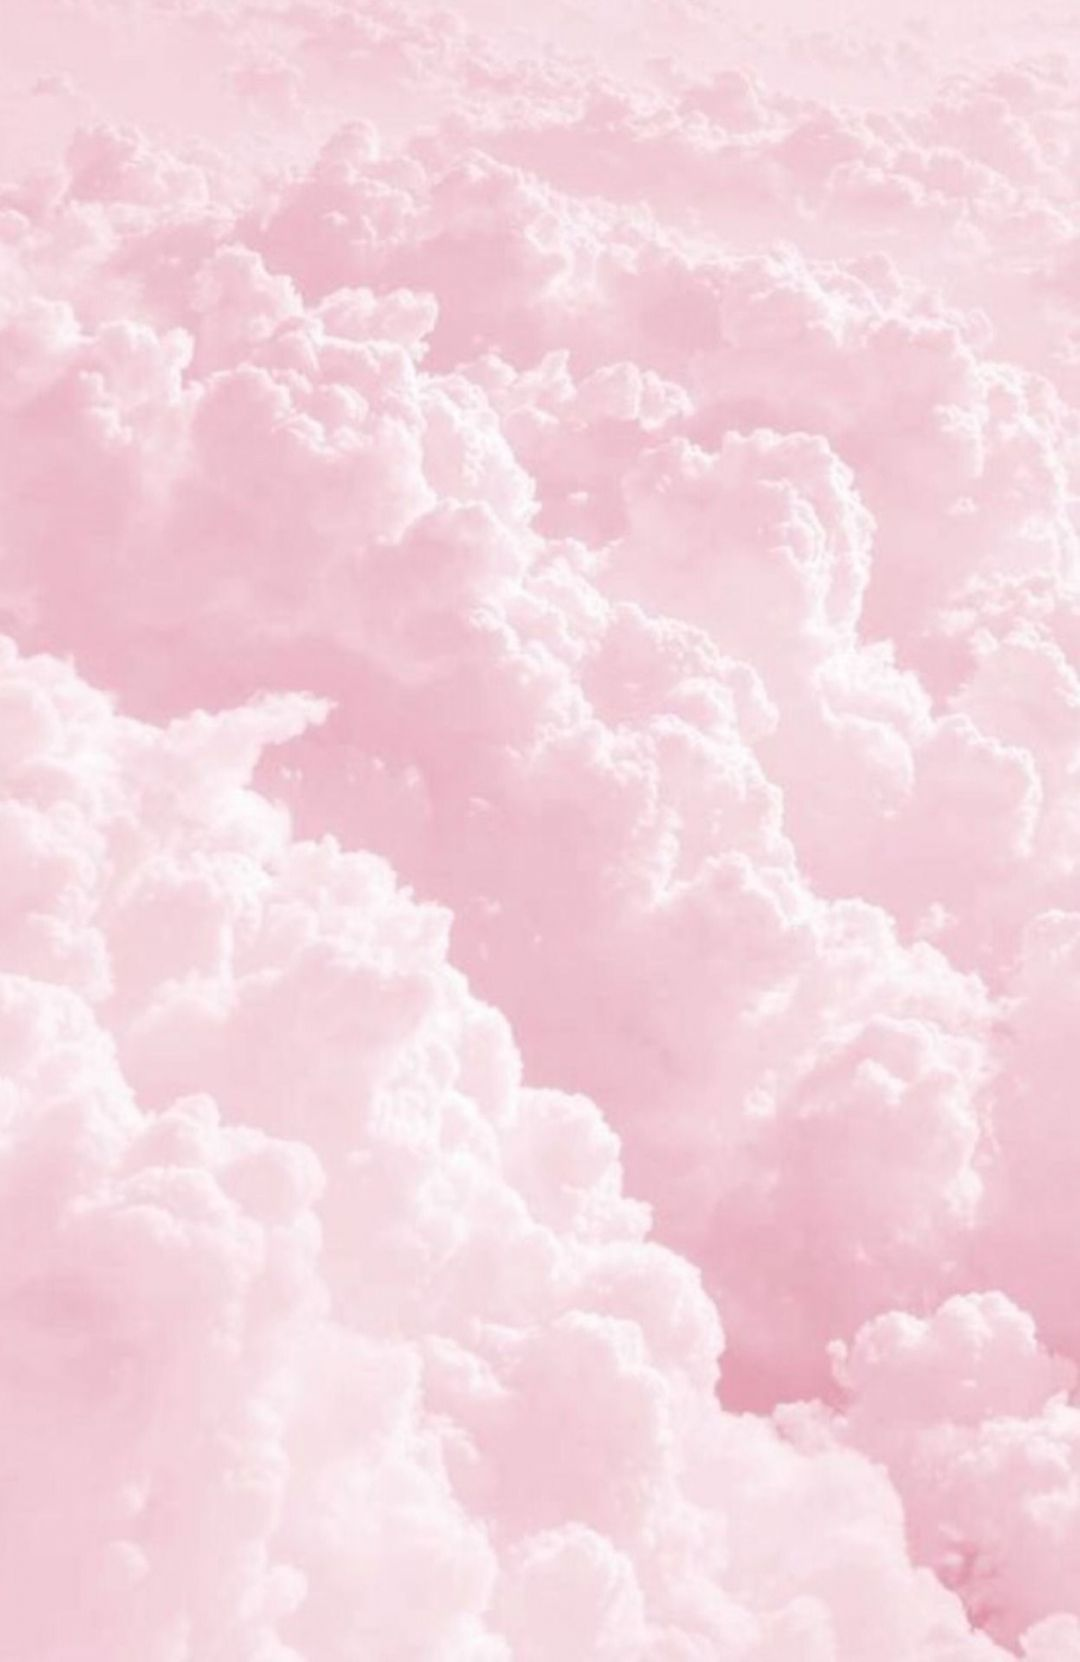 4k Pink Aesthetic Wallpapers Wallpaper Cave